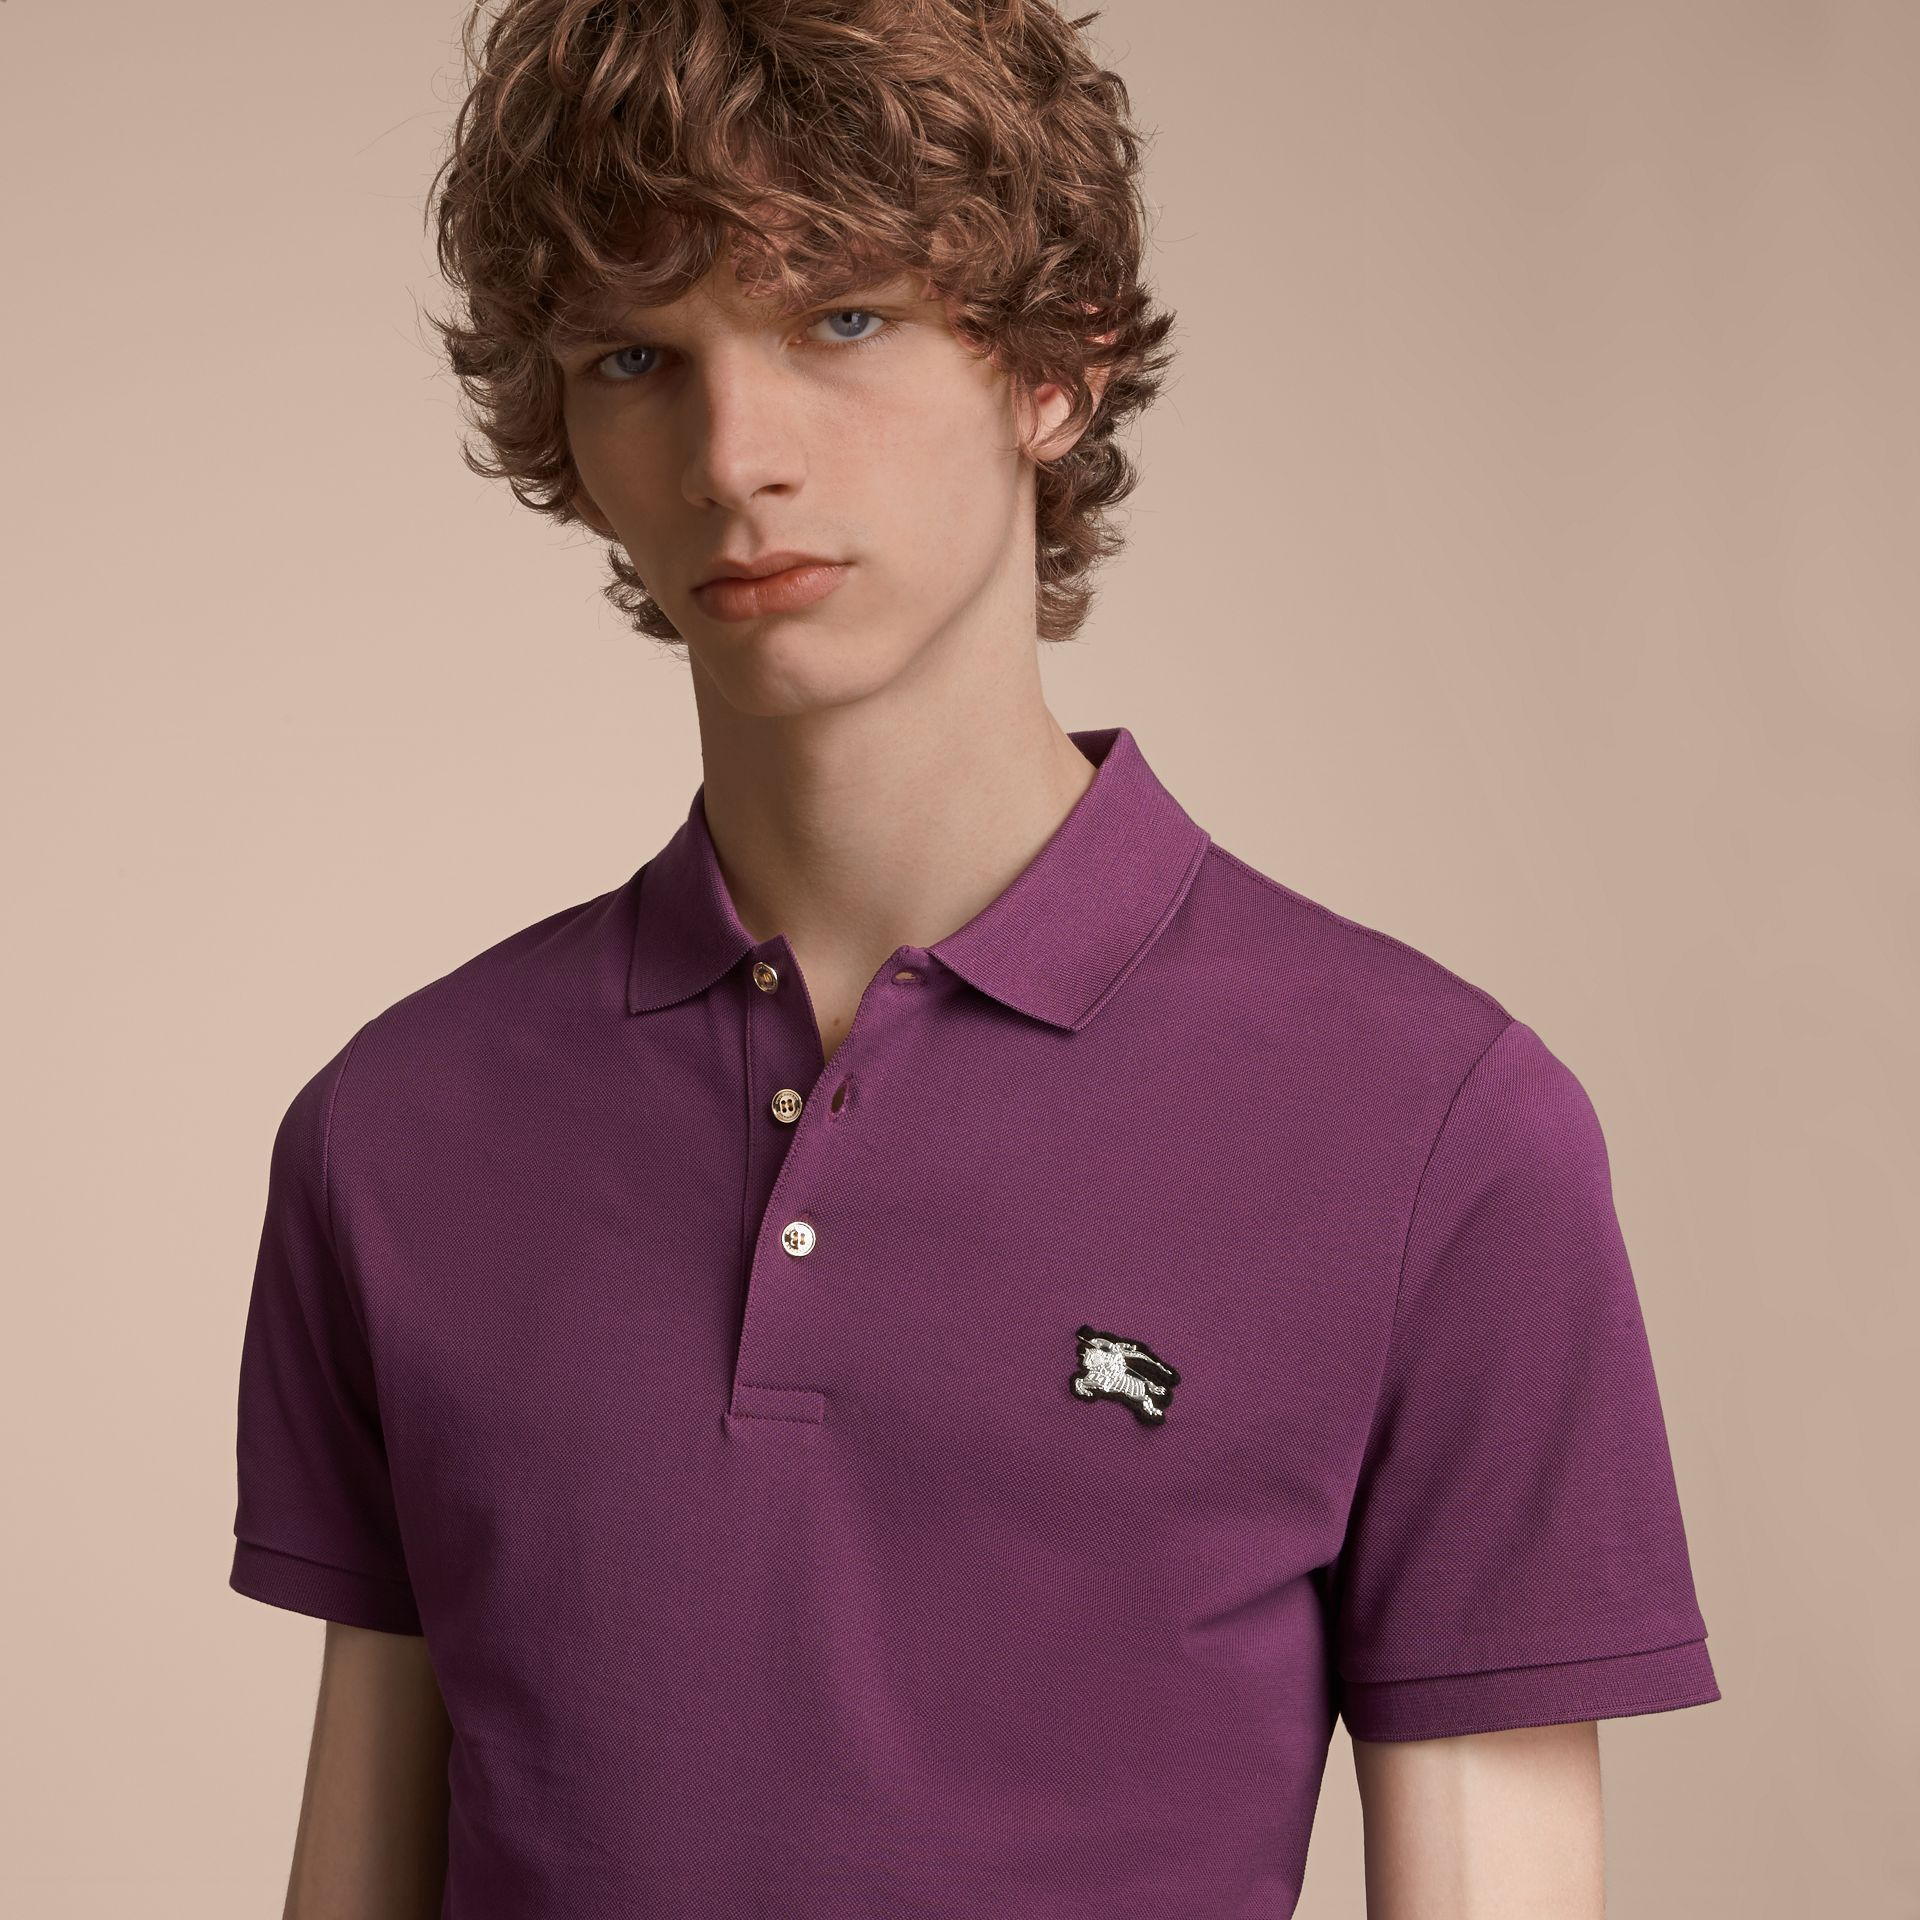 Cotton Piqué Polo Shirt in Heather - Men | Burberry Canada - gallery image 5